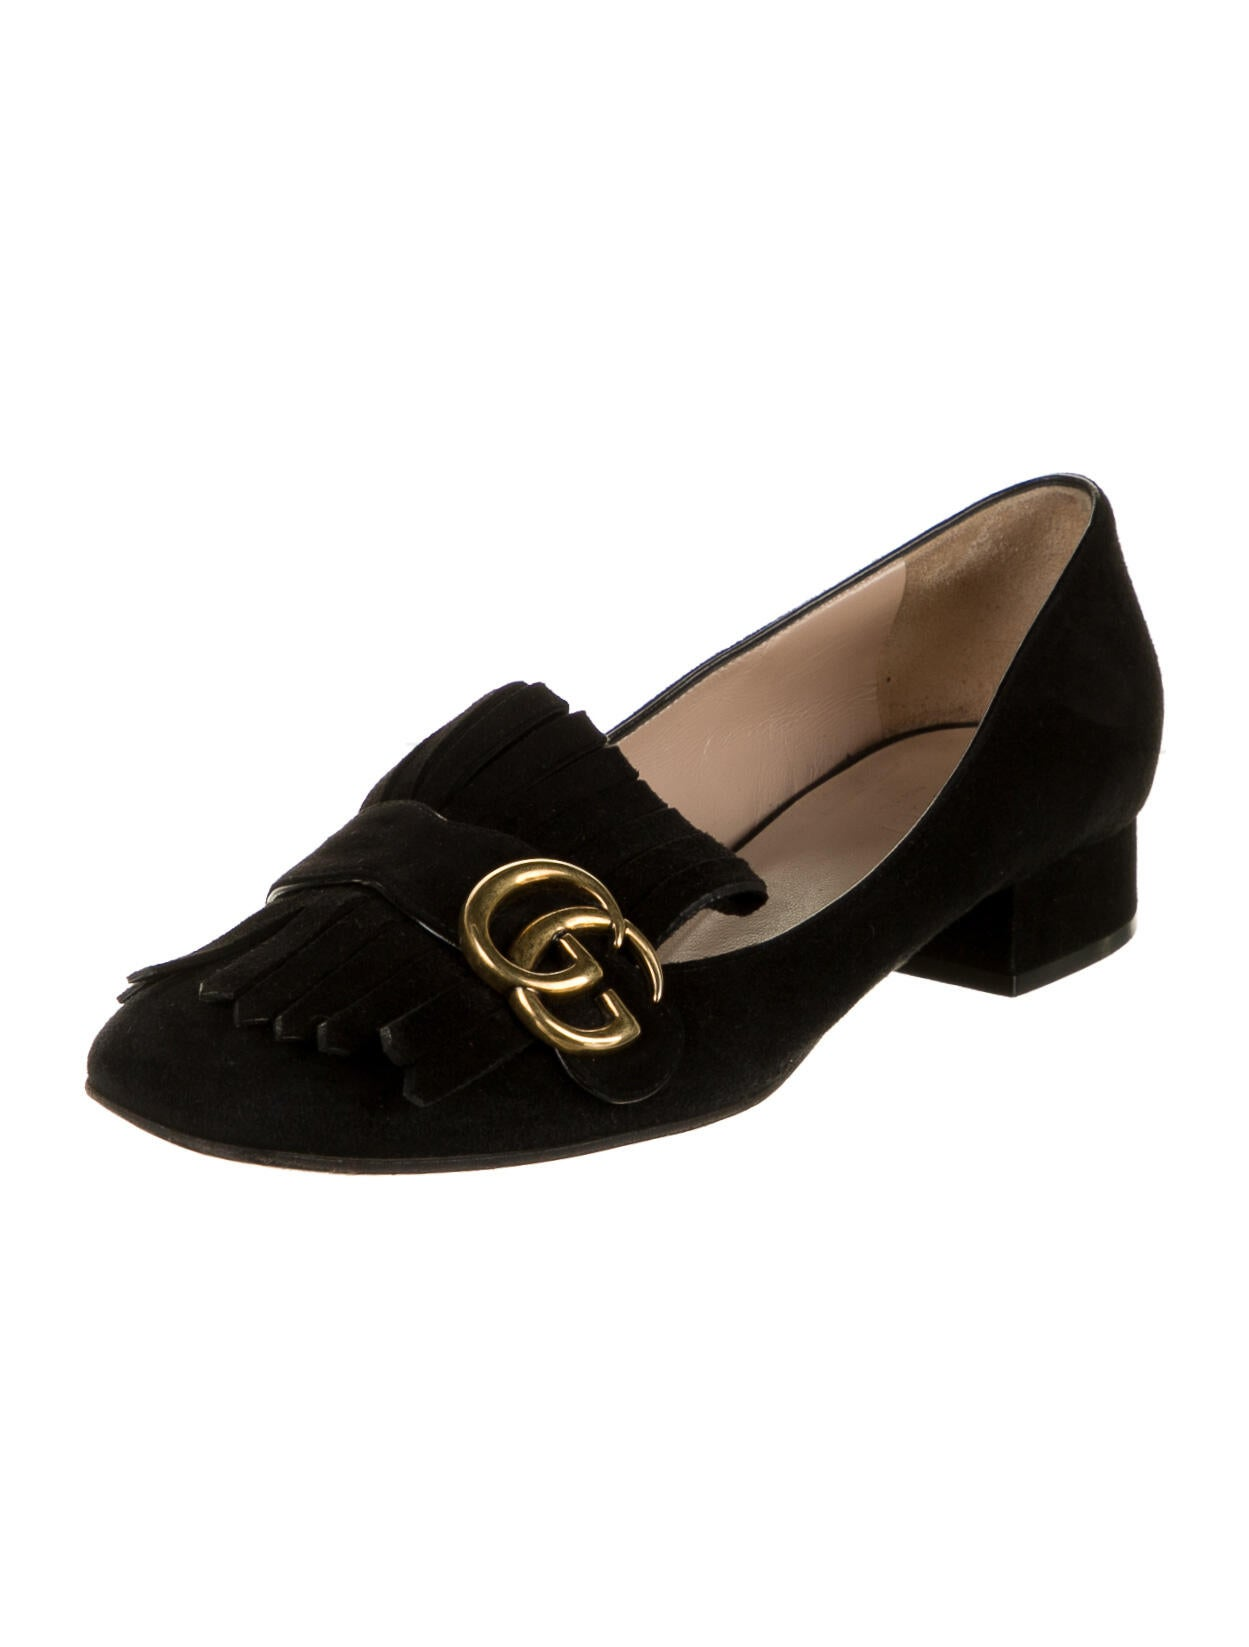 gucci marmont shoe | The RealReal